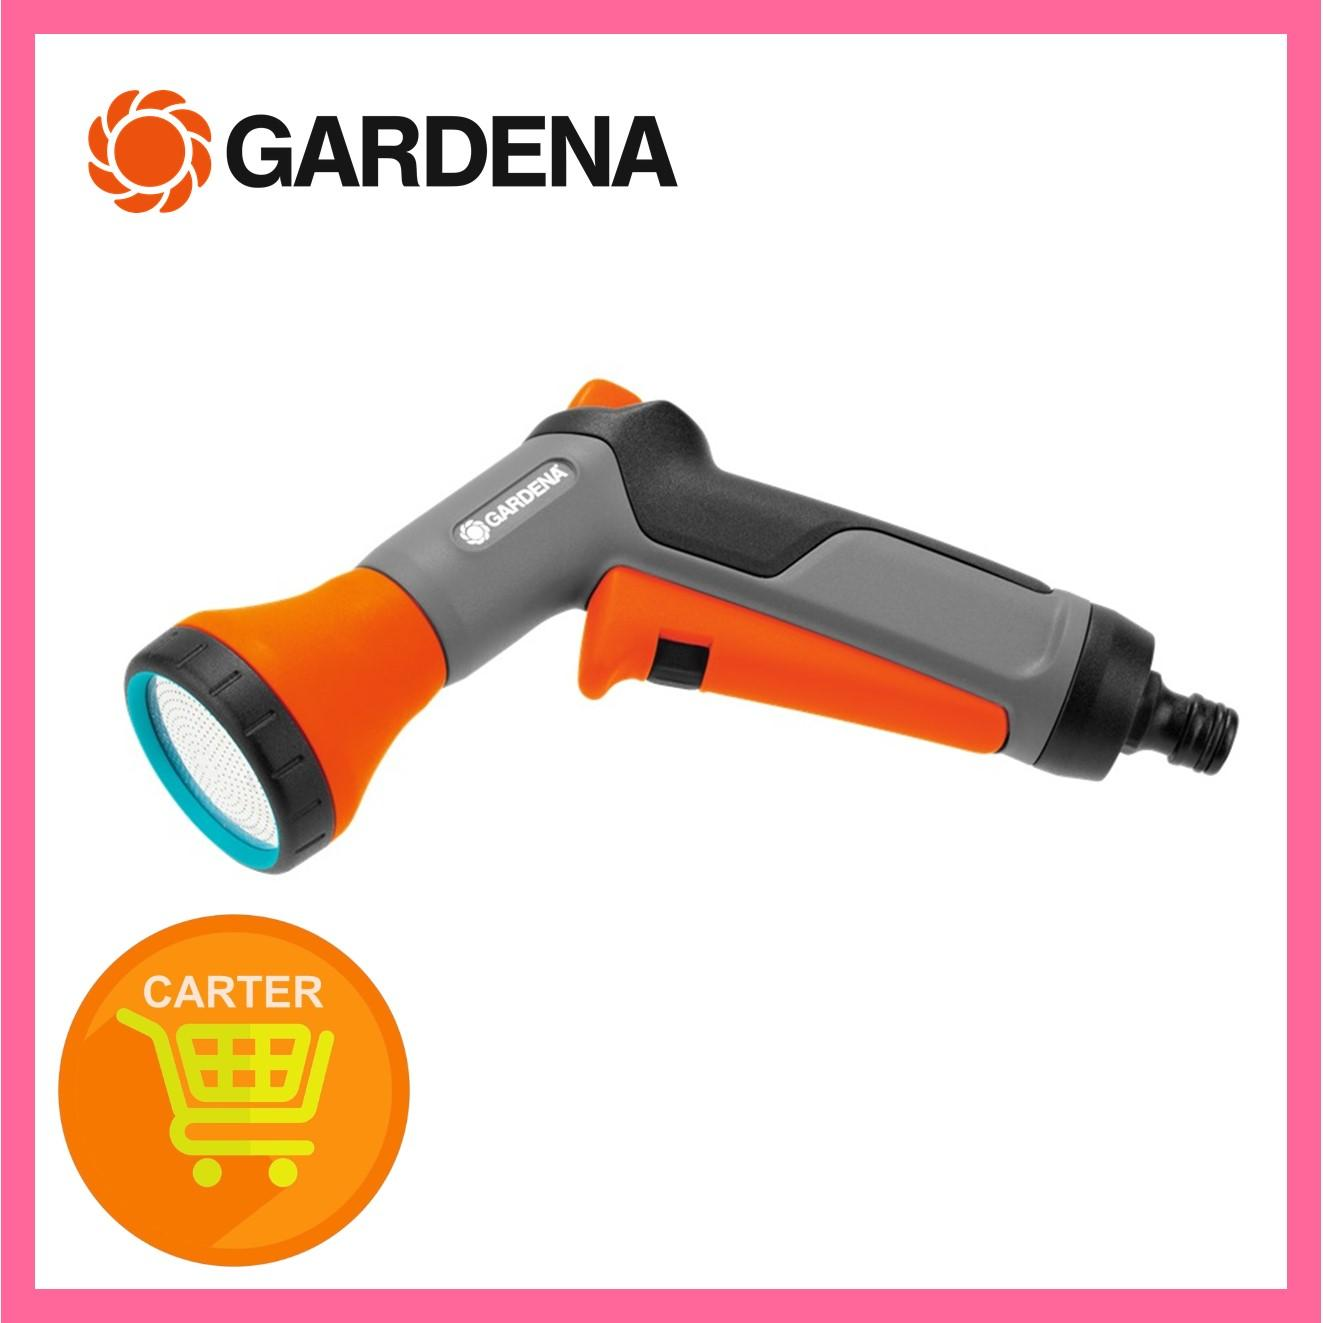 Buy Gardena Gardening Tools Pump Sprayer Lazada